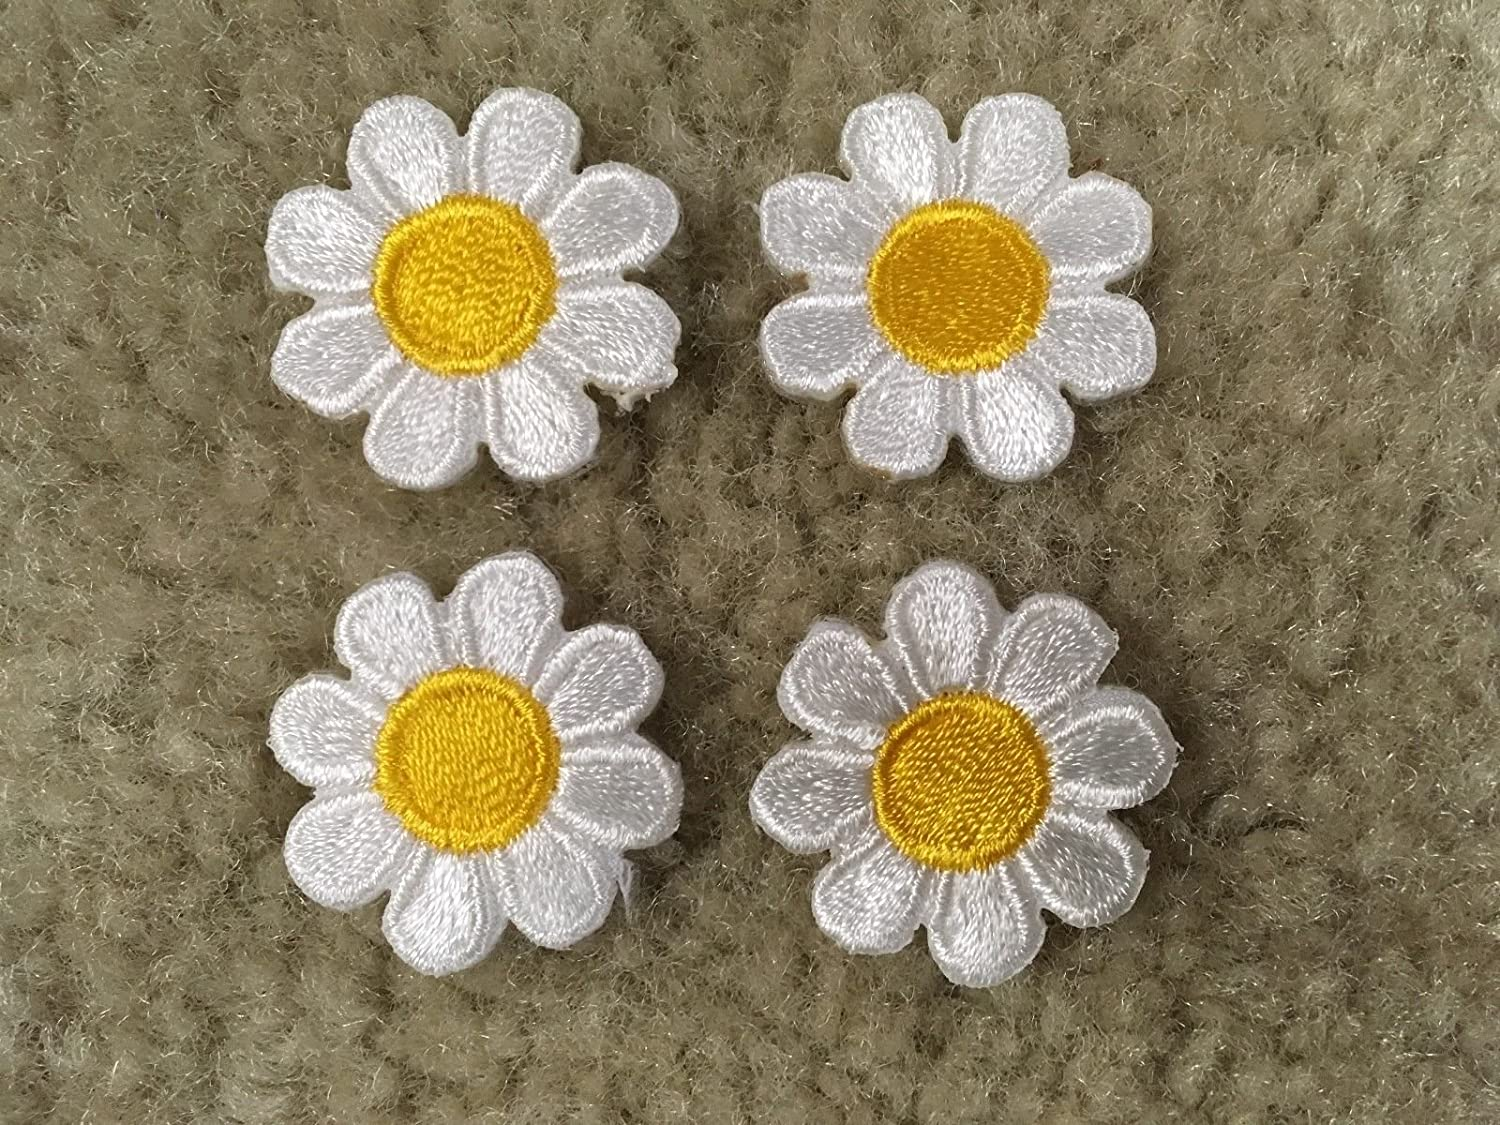 Amazon 2987sw lot 4pcs 1 white yellow daisy flower embroidery amazon 2987sw lot 4pcs 1 white yellow daisy flower embroidery iron on applique patch arts crafts sewing izmirmasajfo